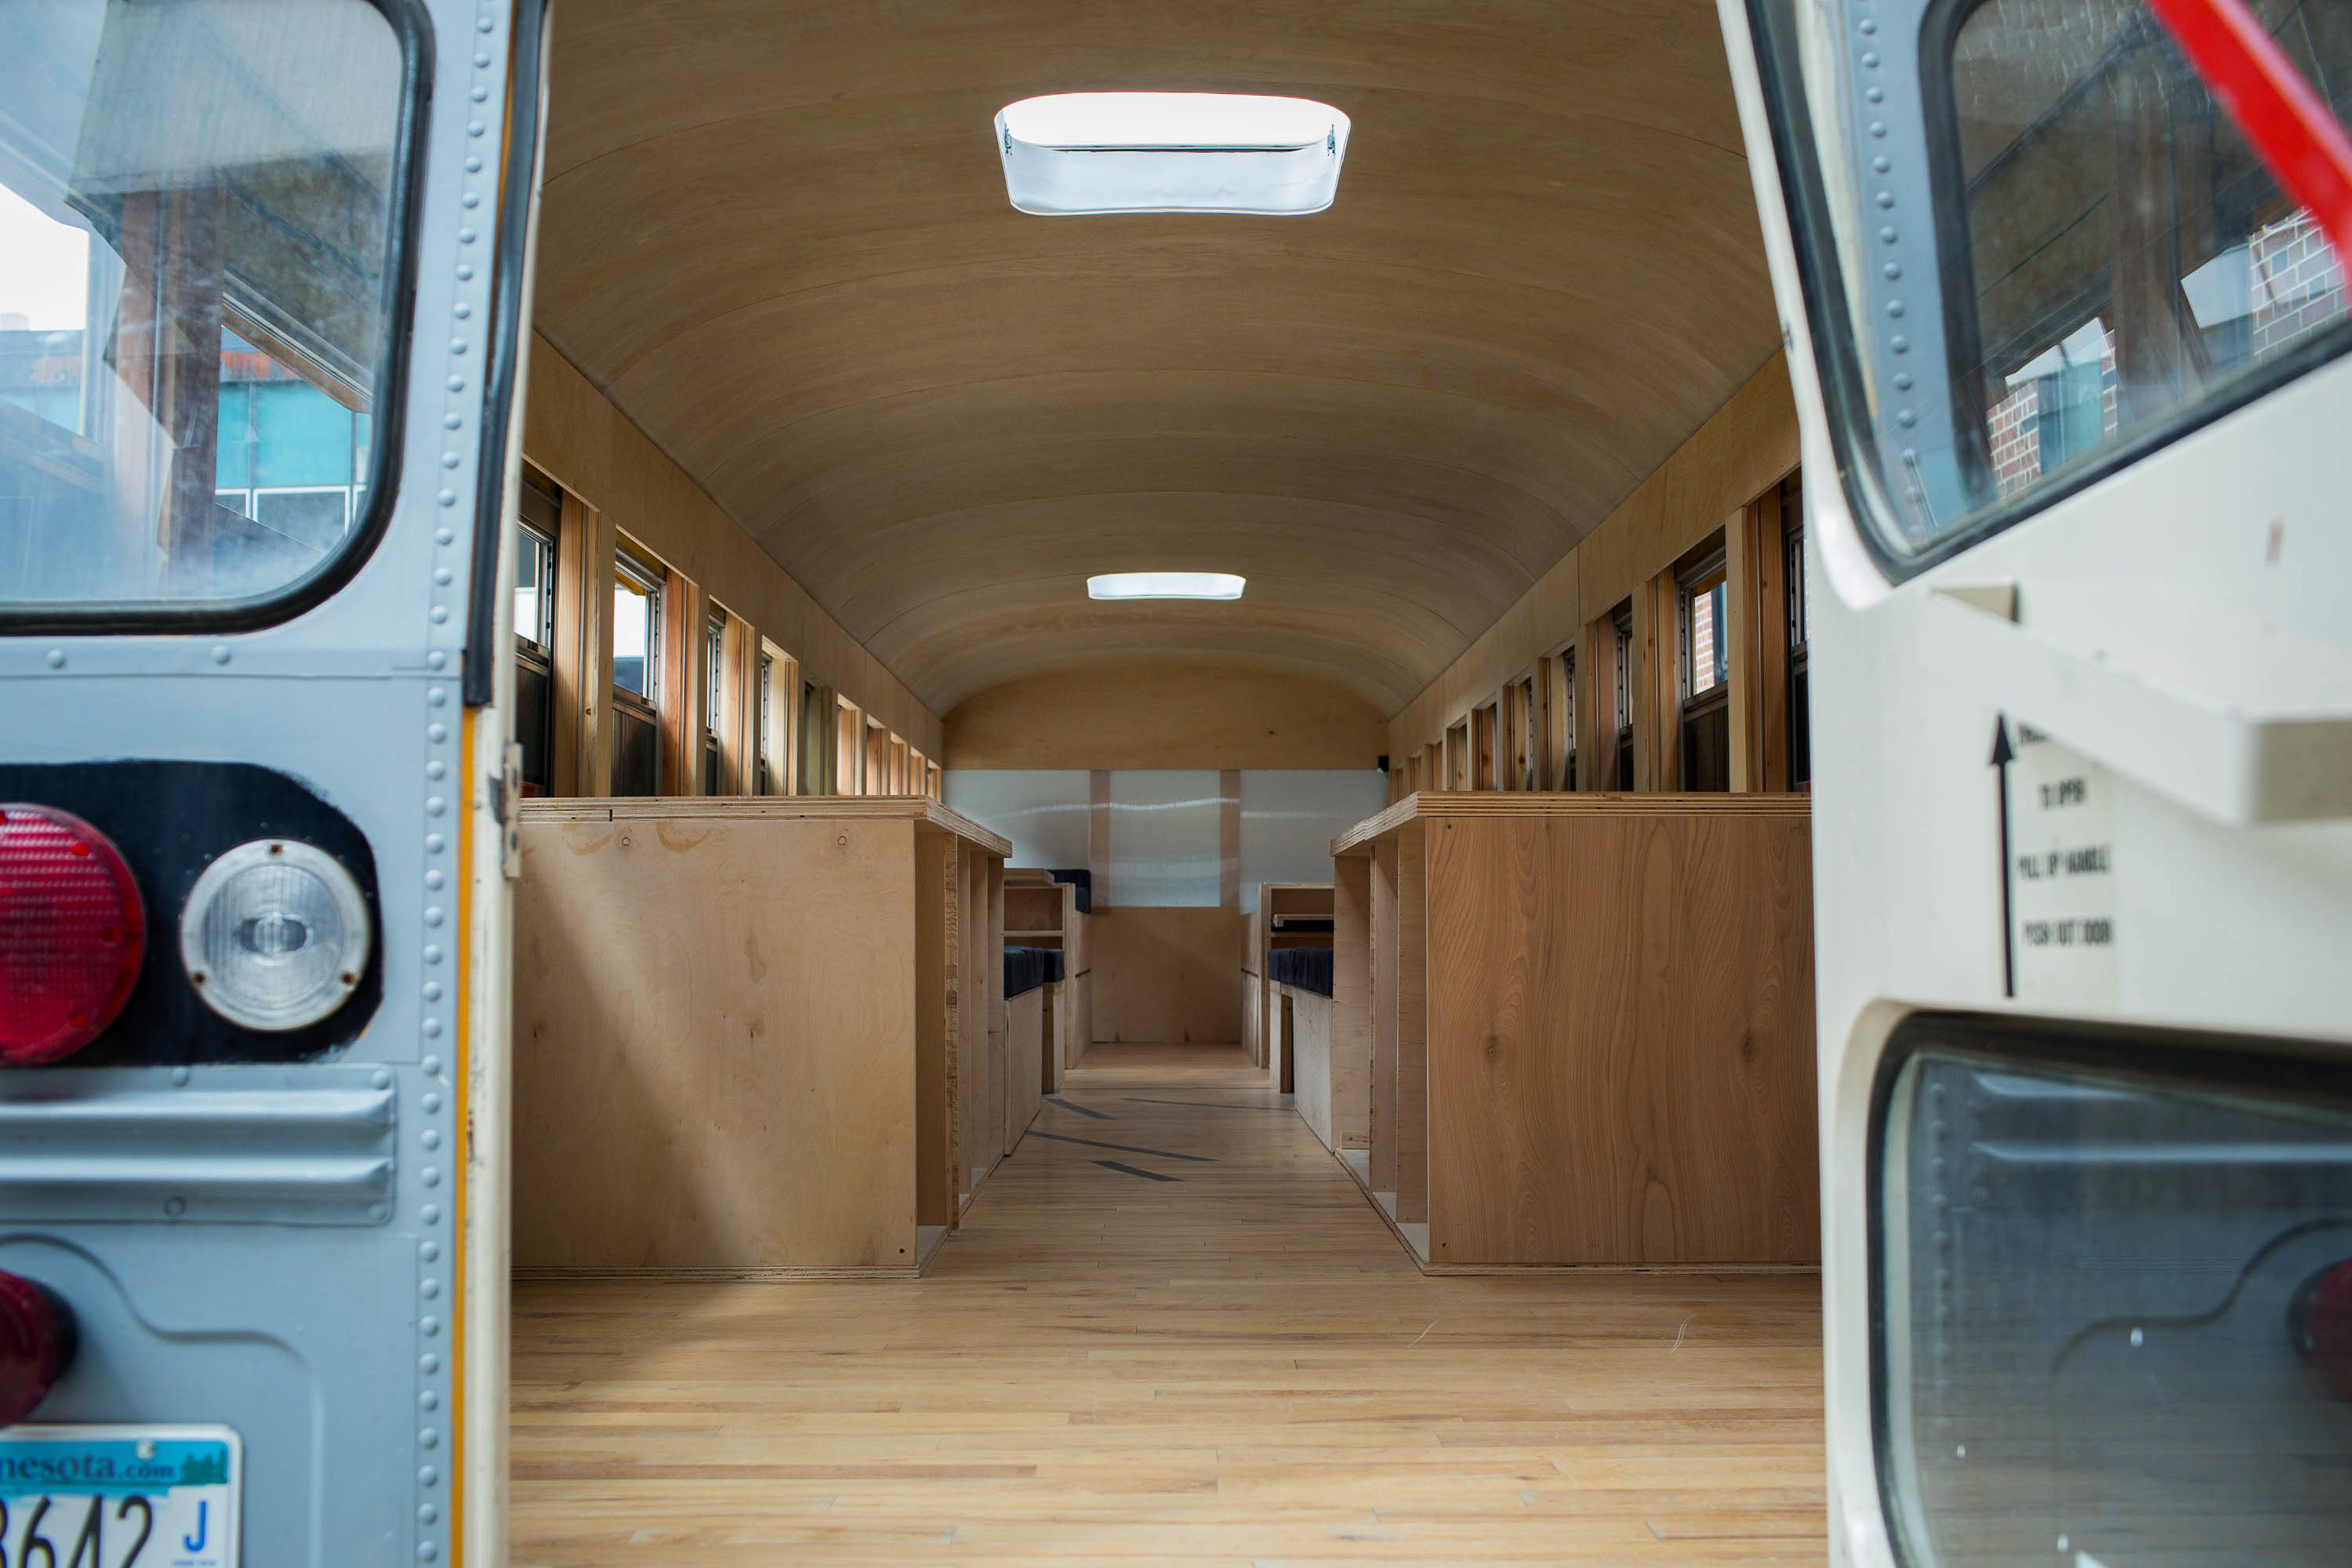 Field notes How a school bus became a house (With images